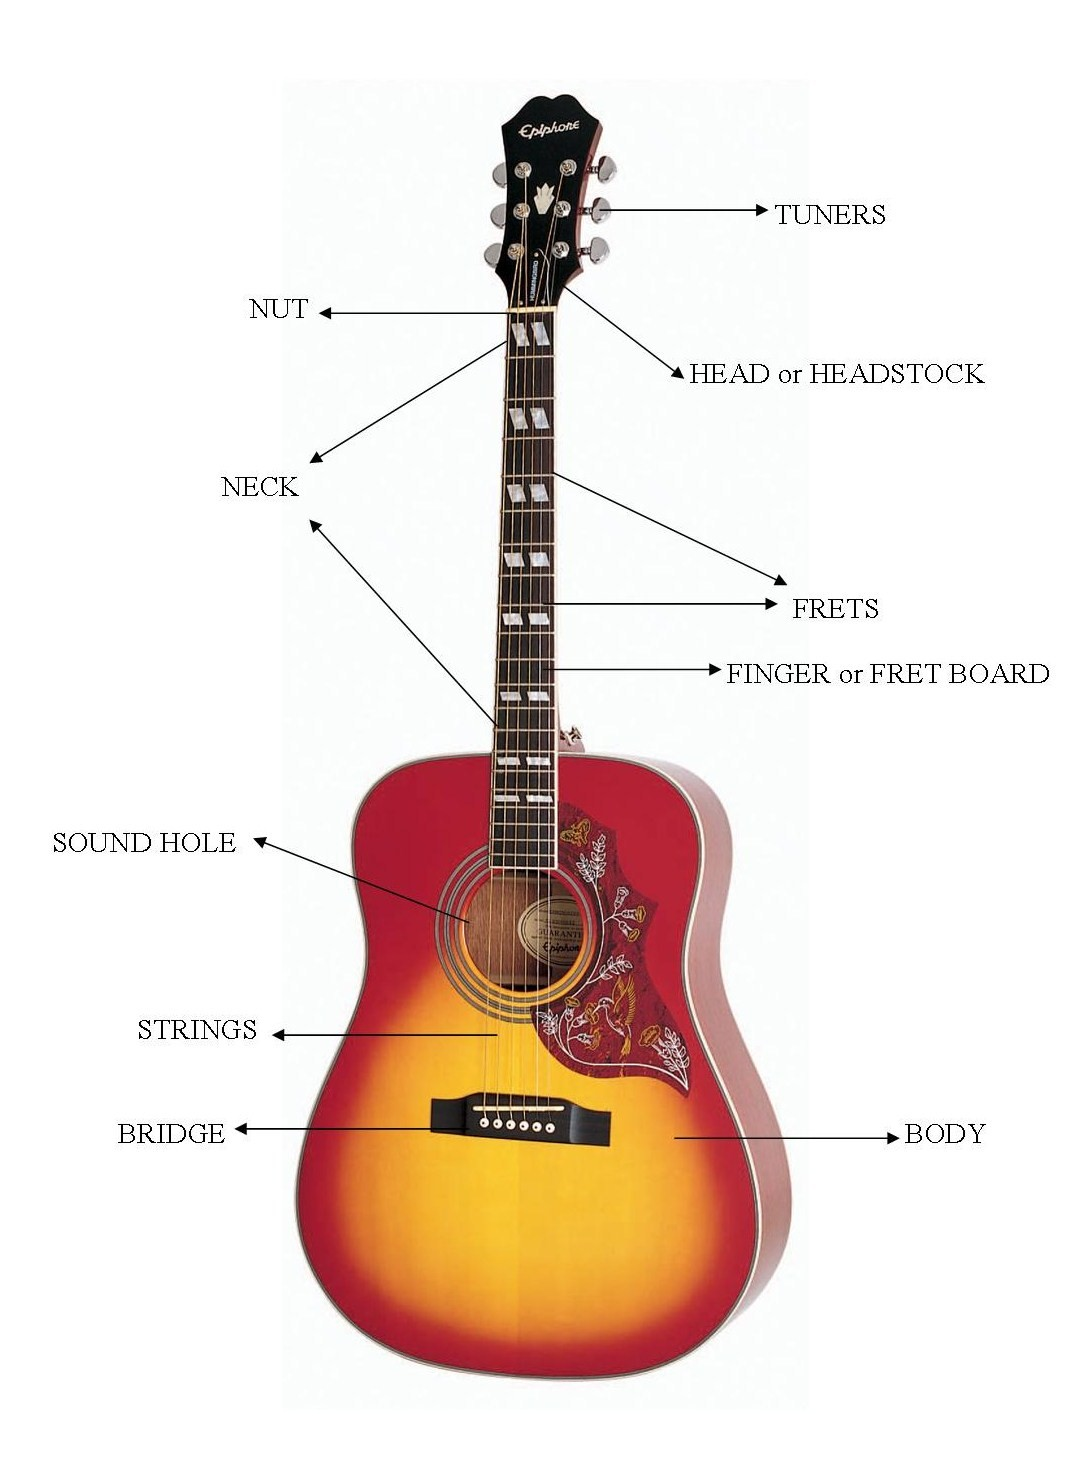 guitar parts diagram 1997 subaru impreza stereo wiring music lessons how to play the for beginners